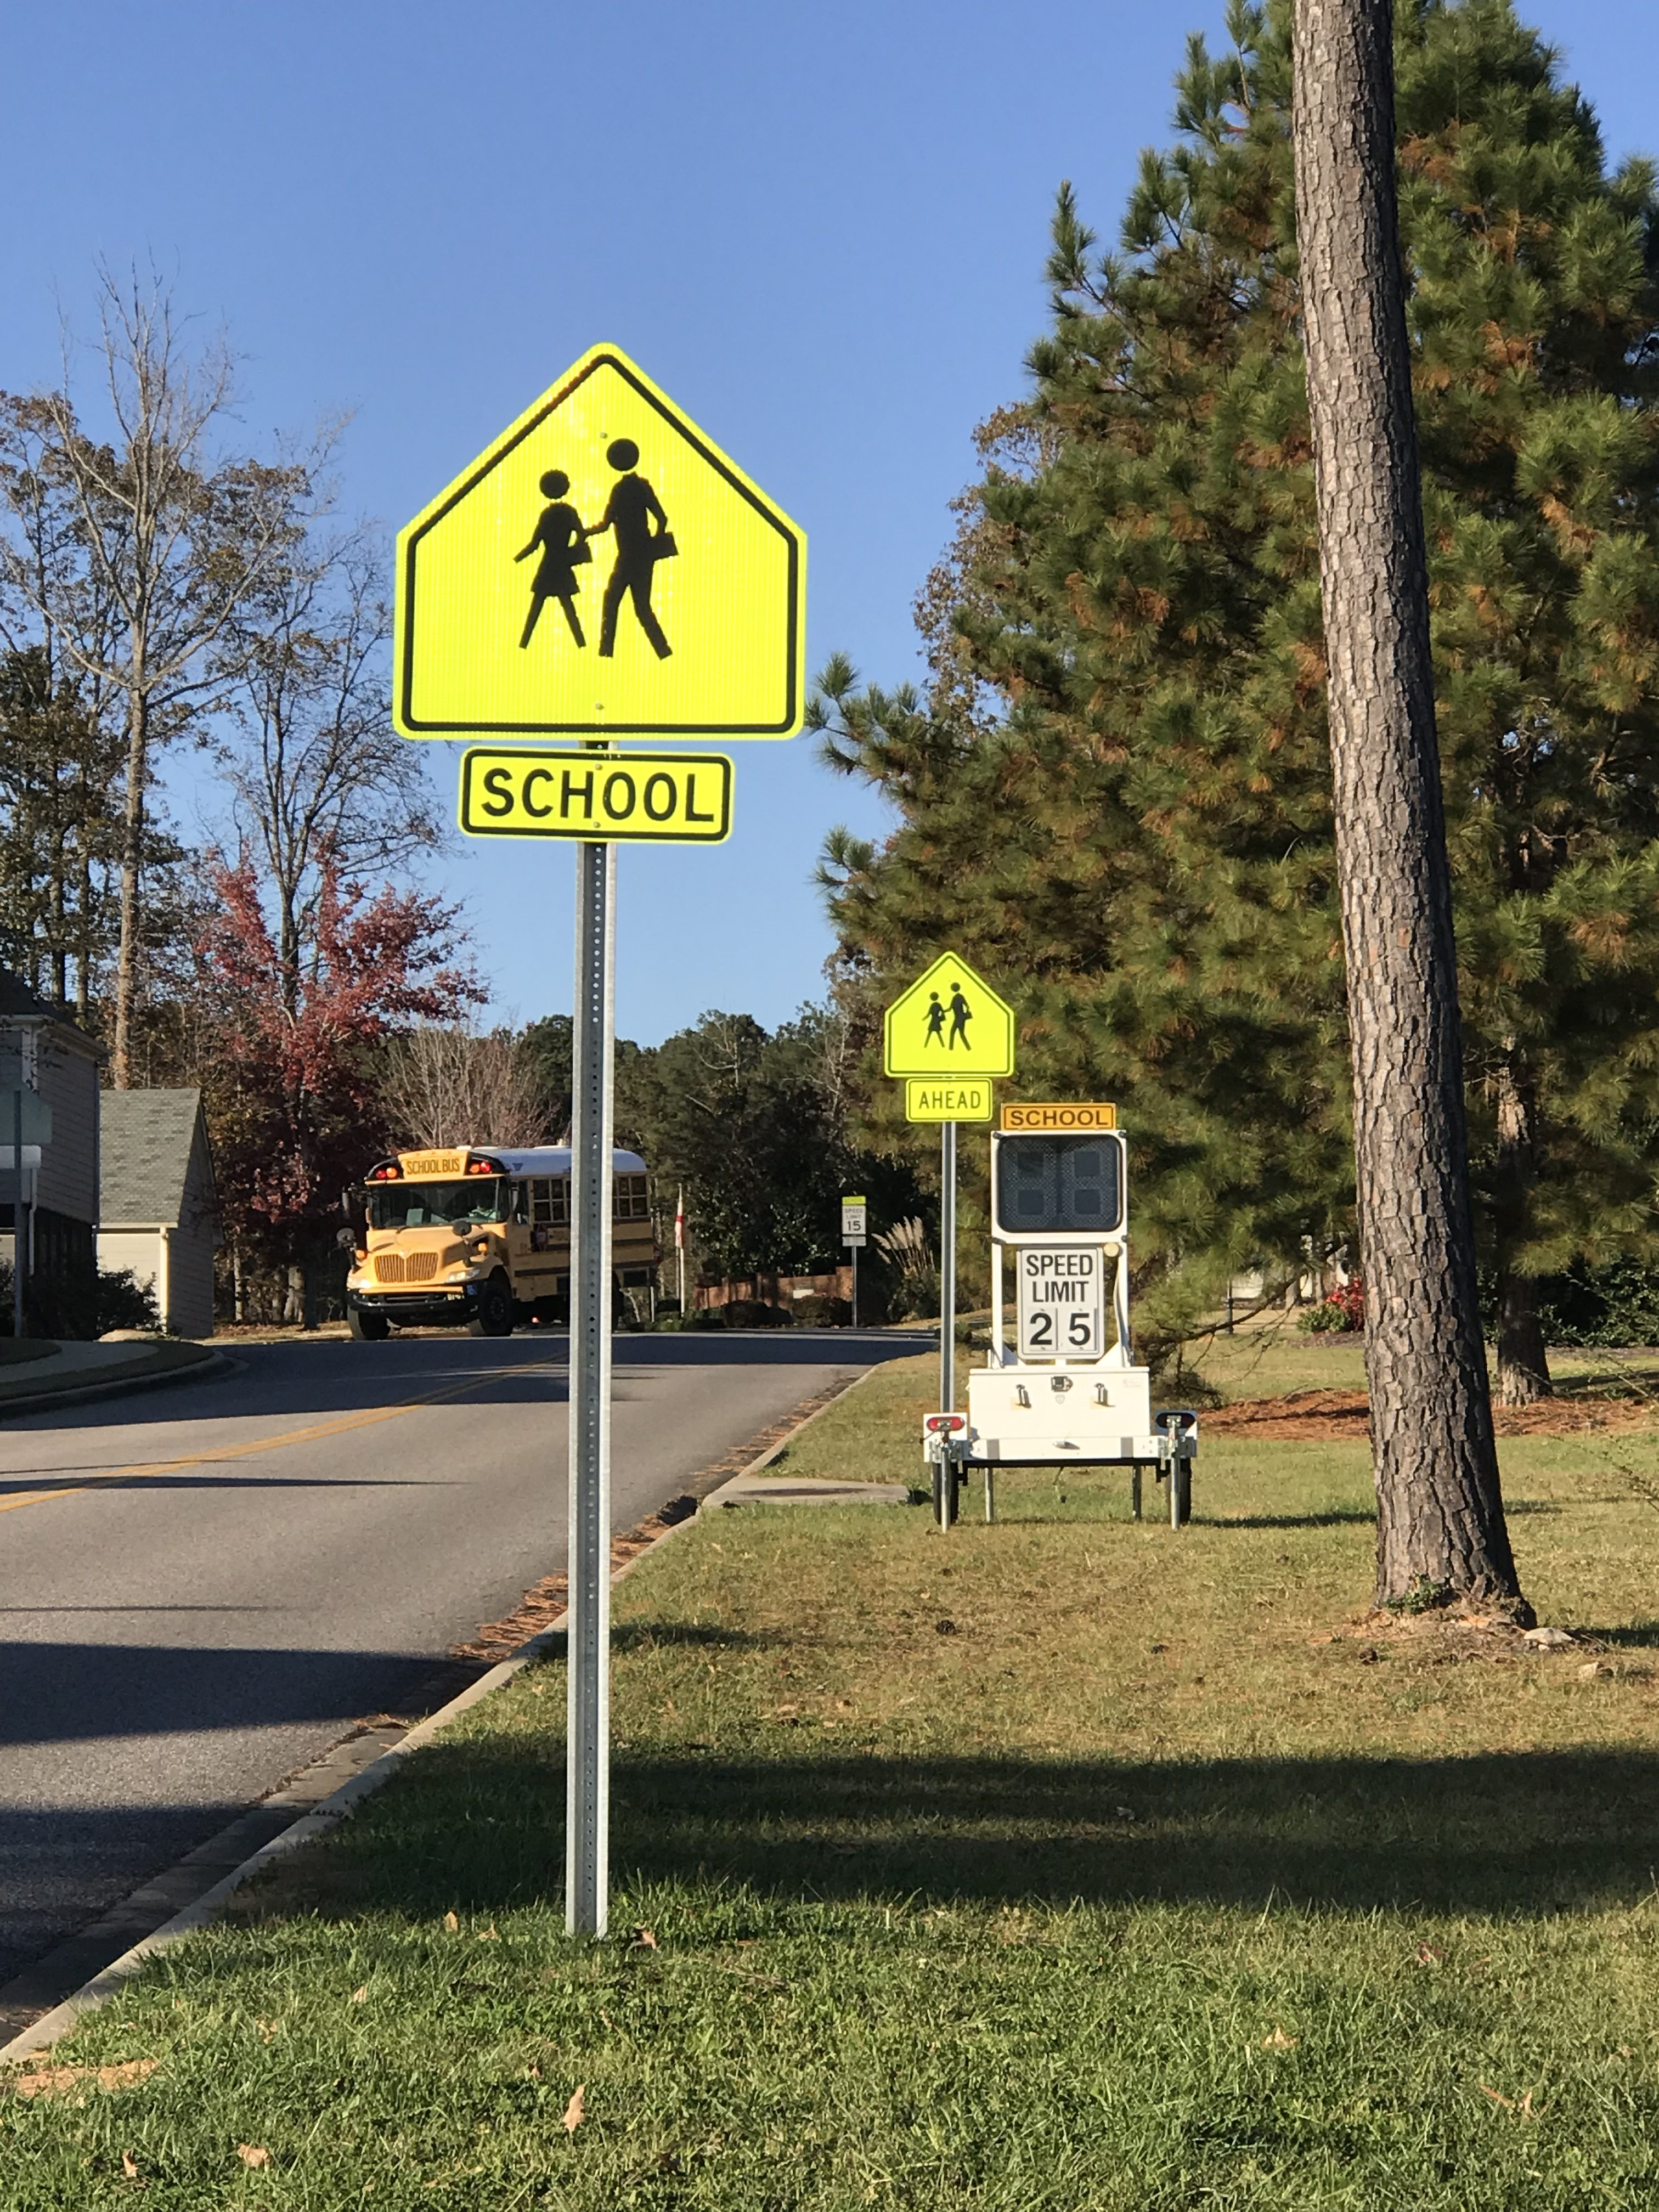 Residents concerned over lack of crosswalk signage near Magnolia Elementary